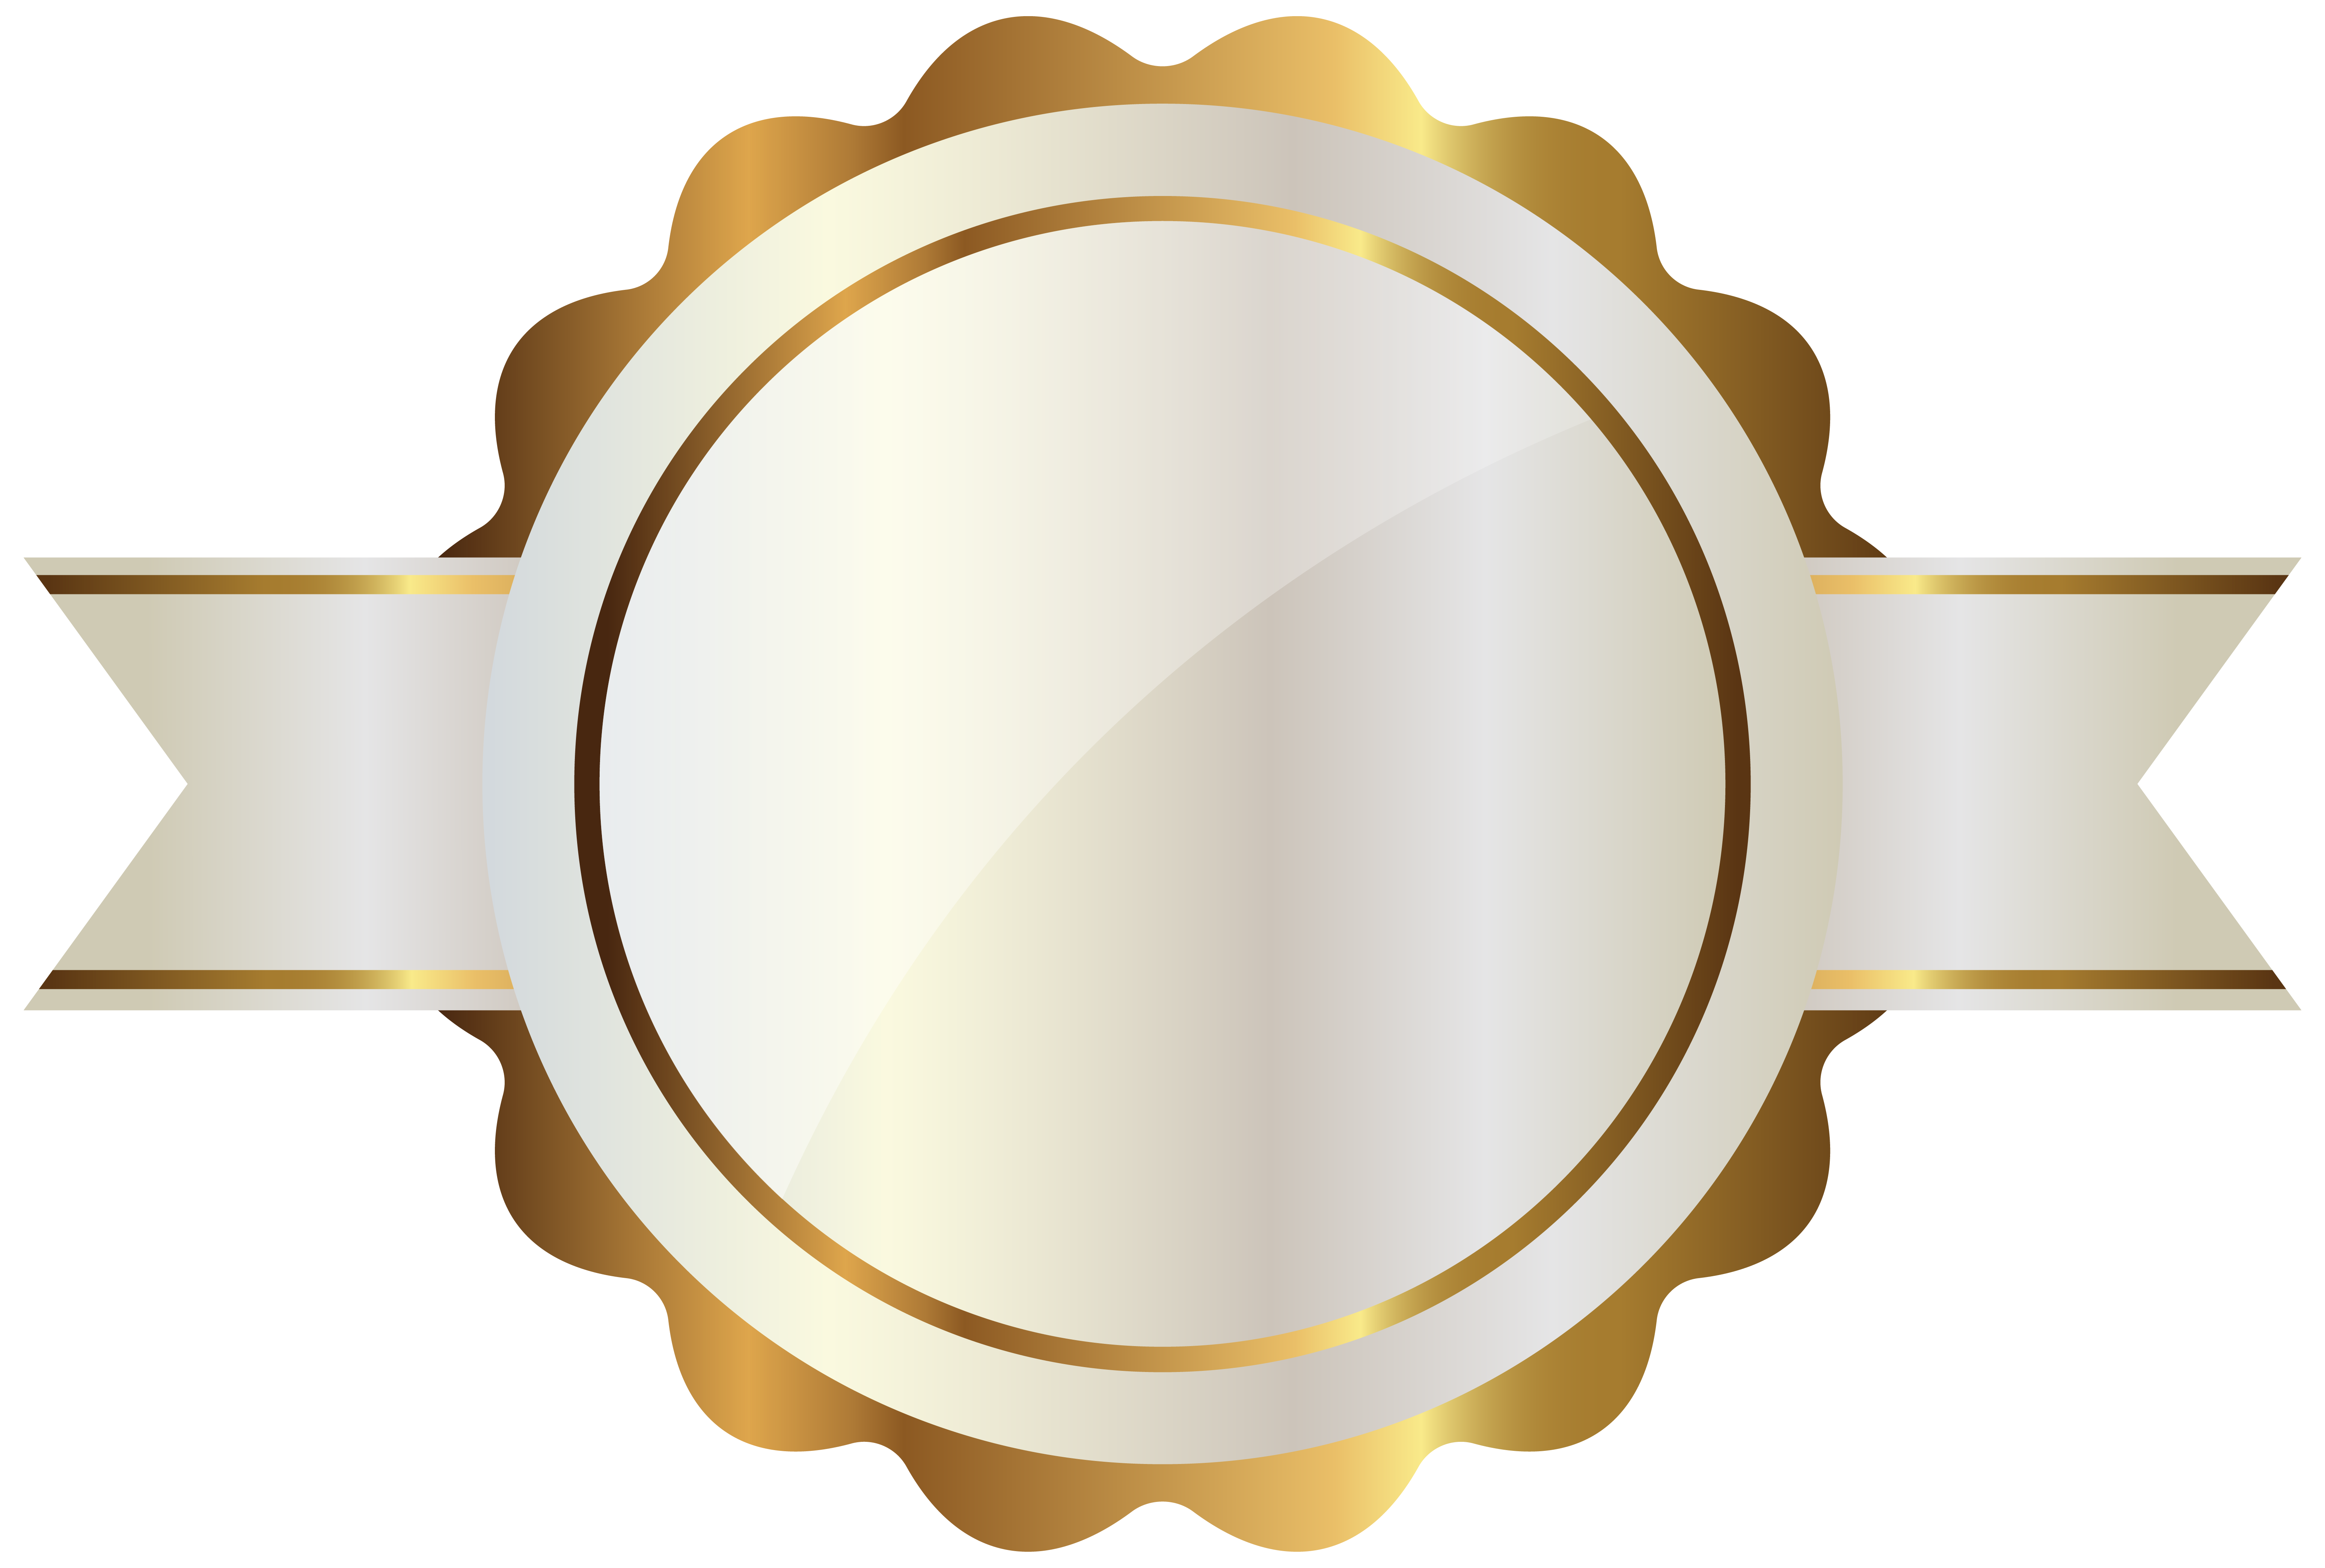 png White label clipart. With gold png image